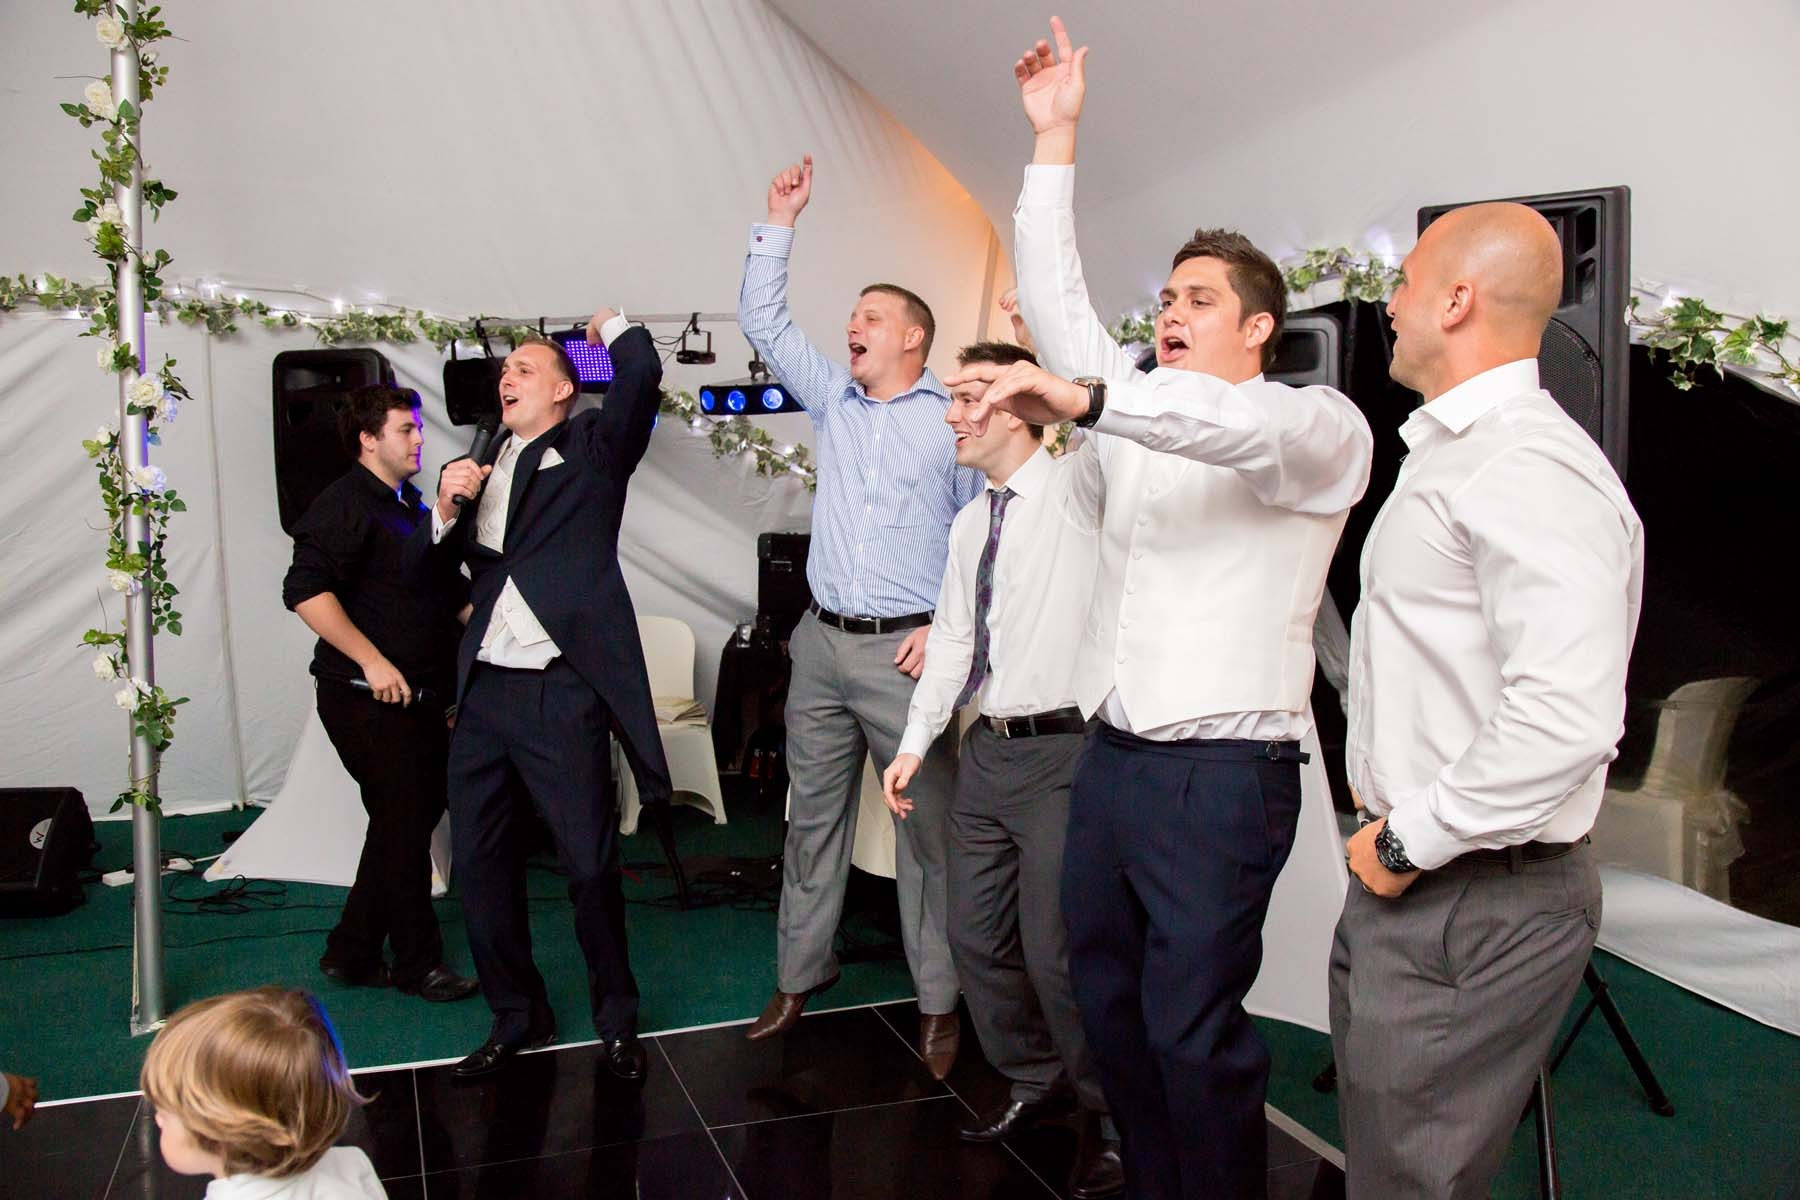 Sussex & Surrey Wedding Photographer - Guests & Groups (27)